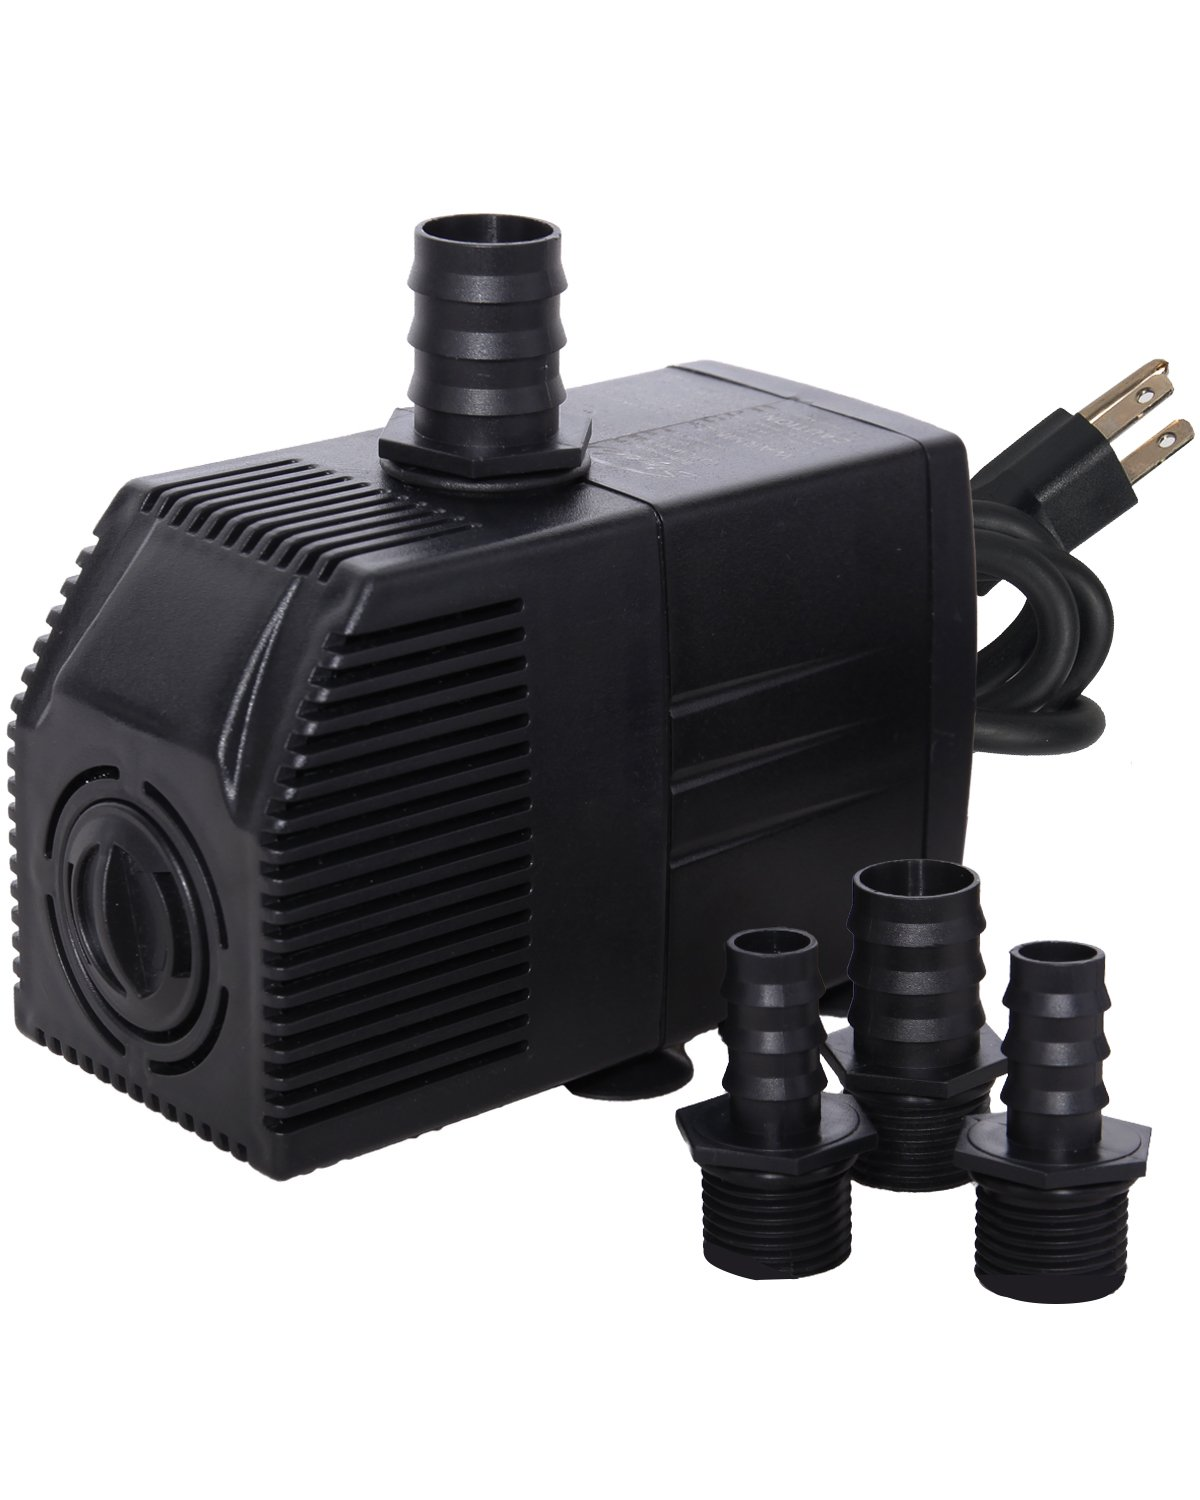 Simple Deluxe 290 GPH UL Listed Submersible Pump with 6' Cord, Water Pump for Fish Tank, Hydroponics, Aquaponics, Fountains, Ponds, Statuary, Aquariums & Inline